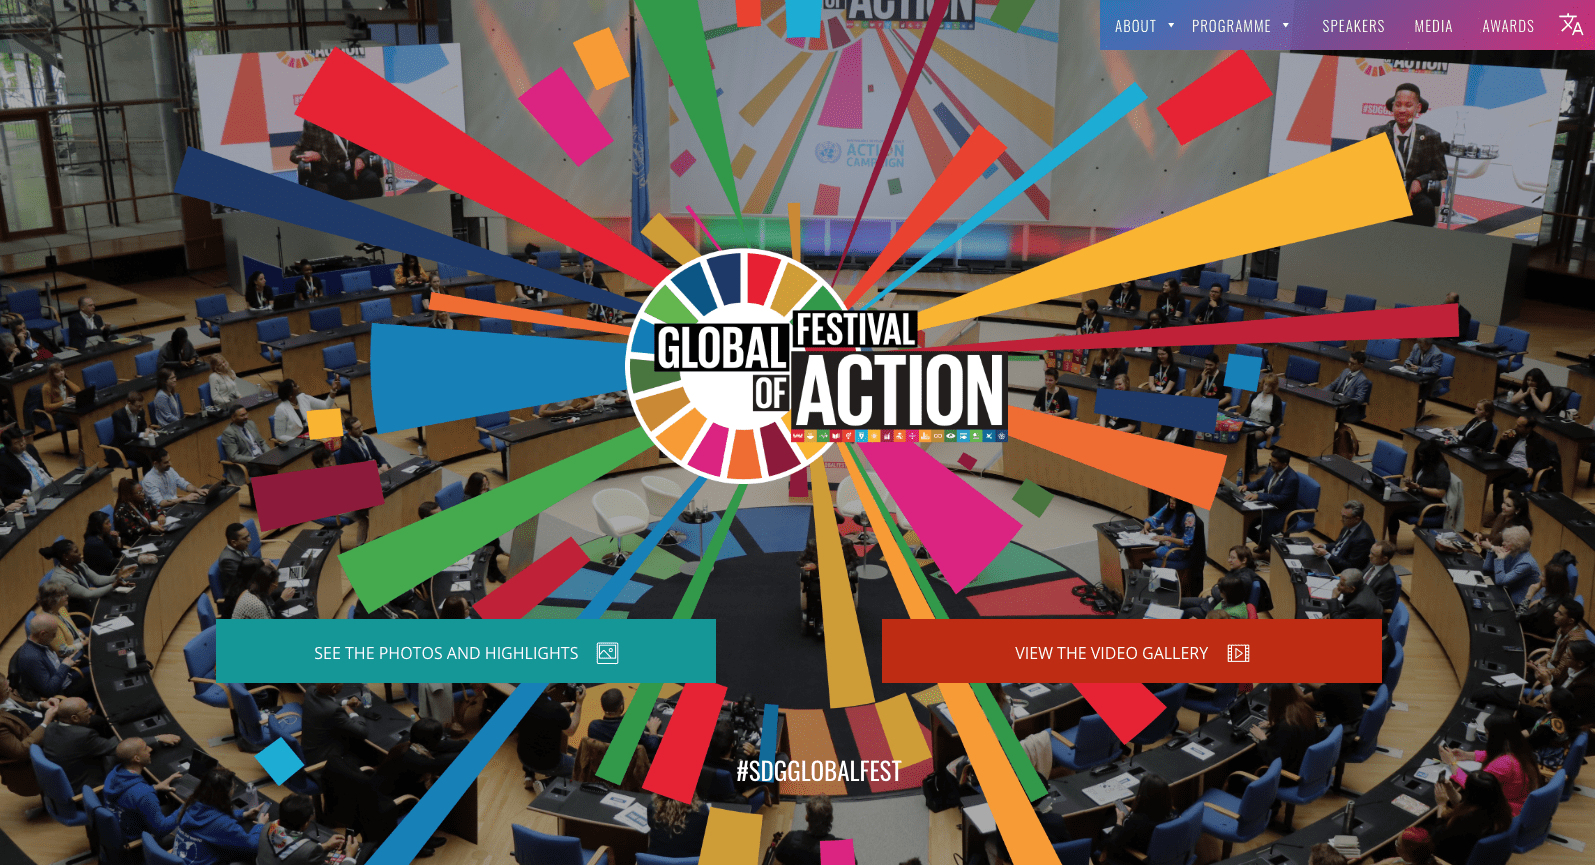 Global festival of actions